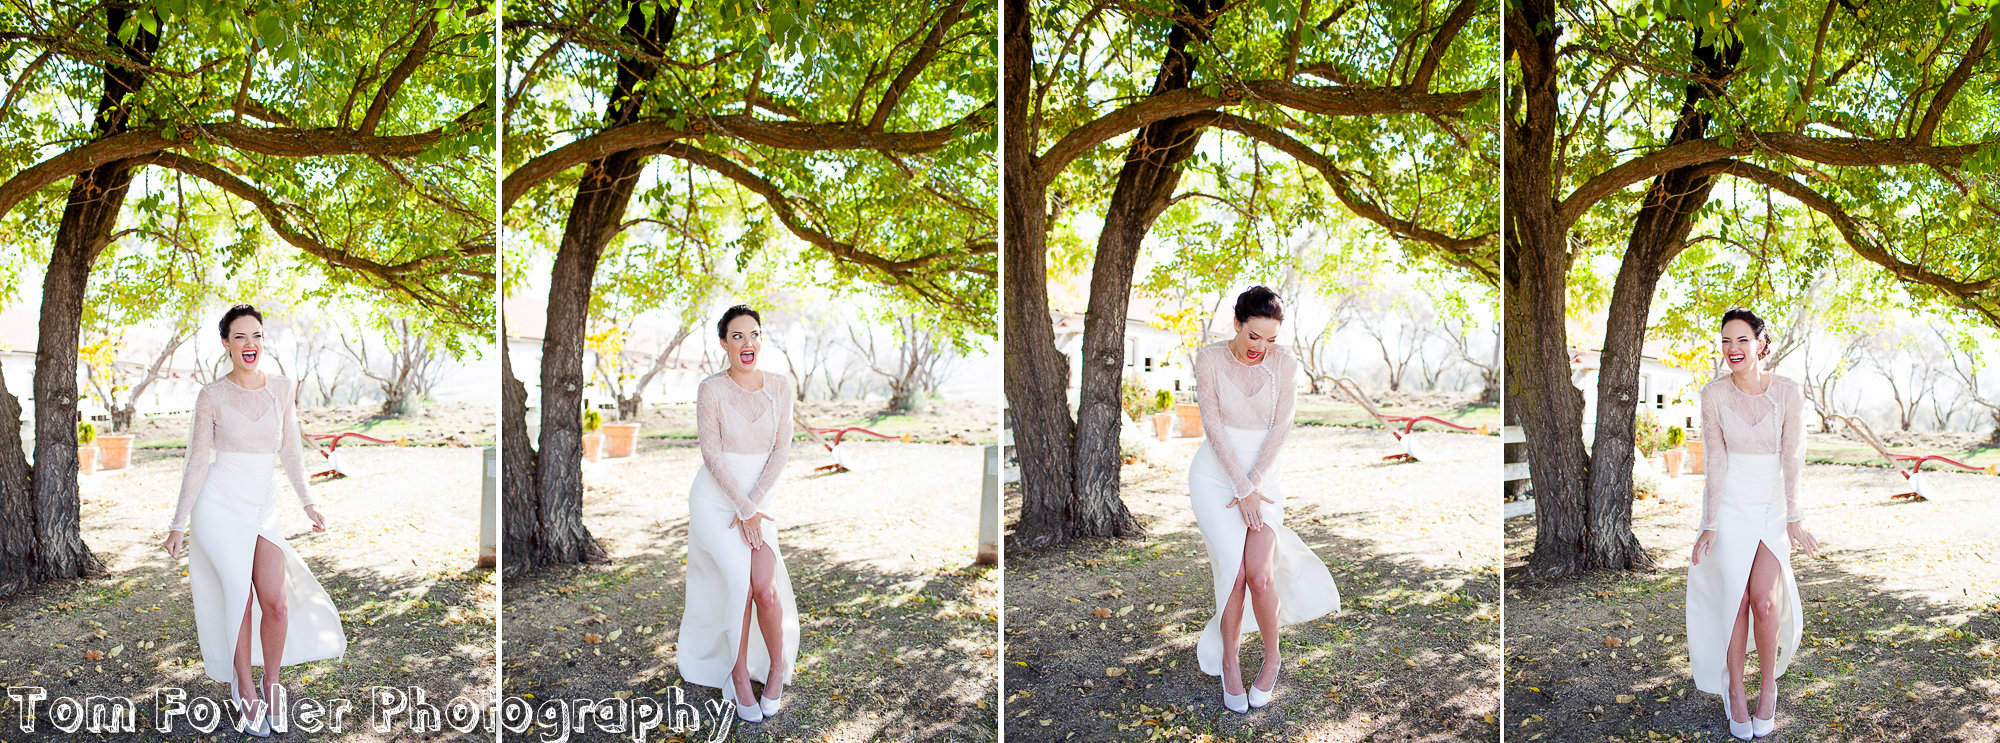 Santa_Margarita_Ranch_Wedding_TomFowlerPhotography_Wedding_Photographer-10